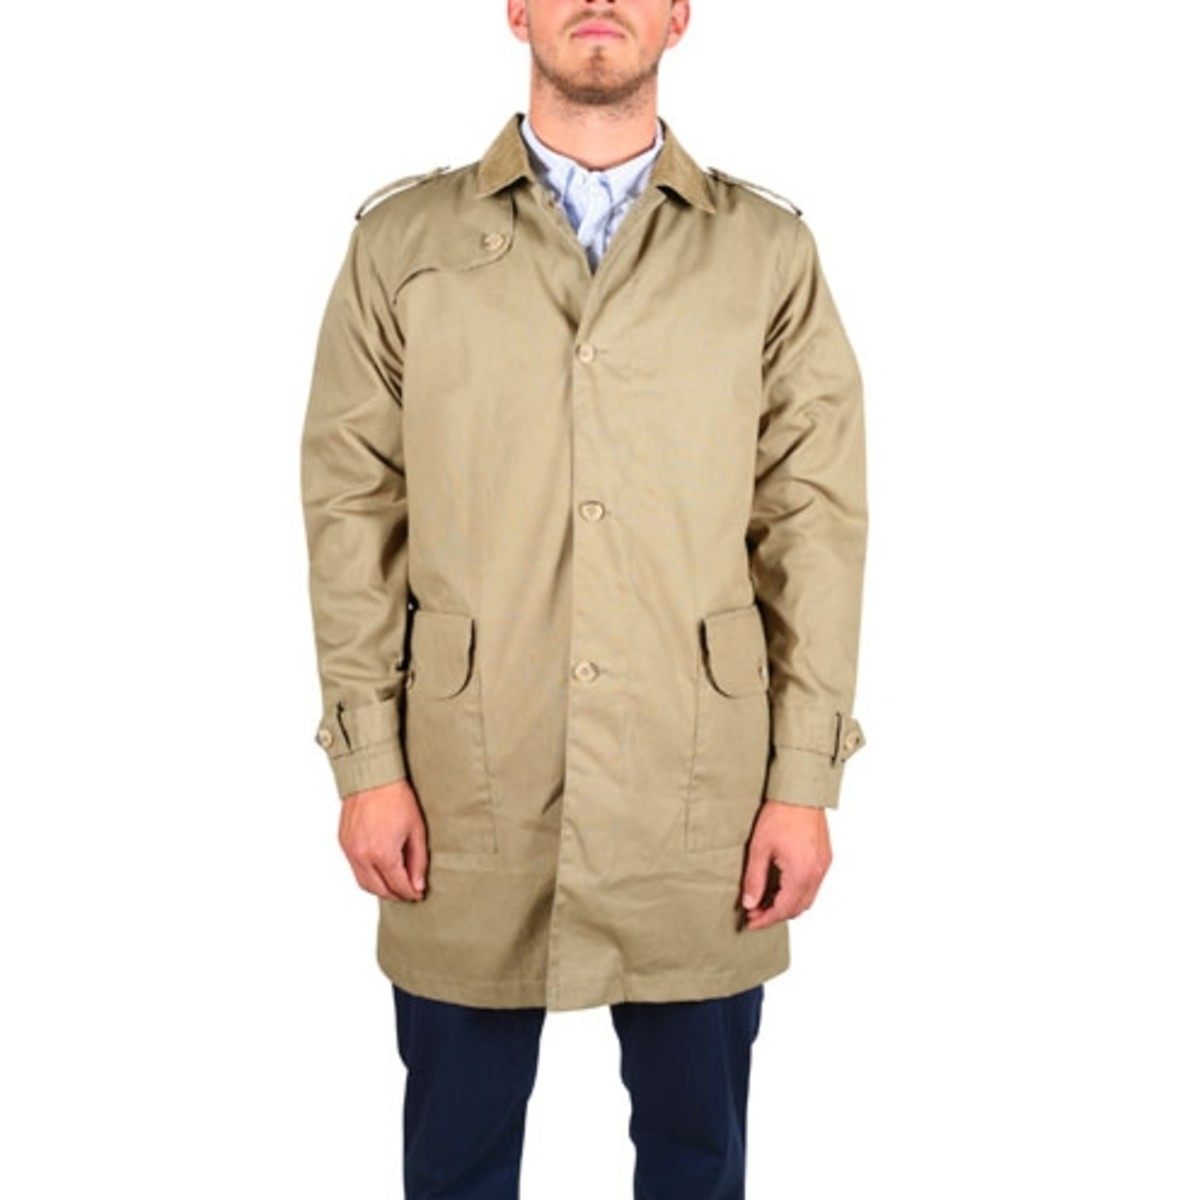 Penfield SS2011 Jackets 8